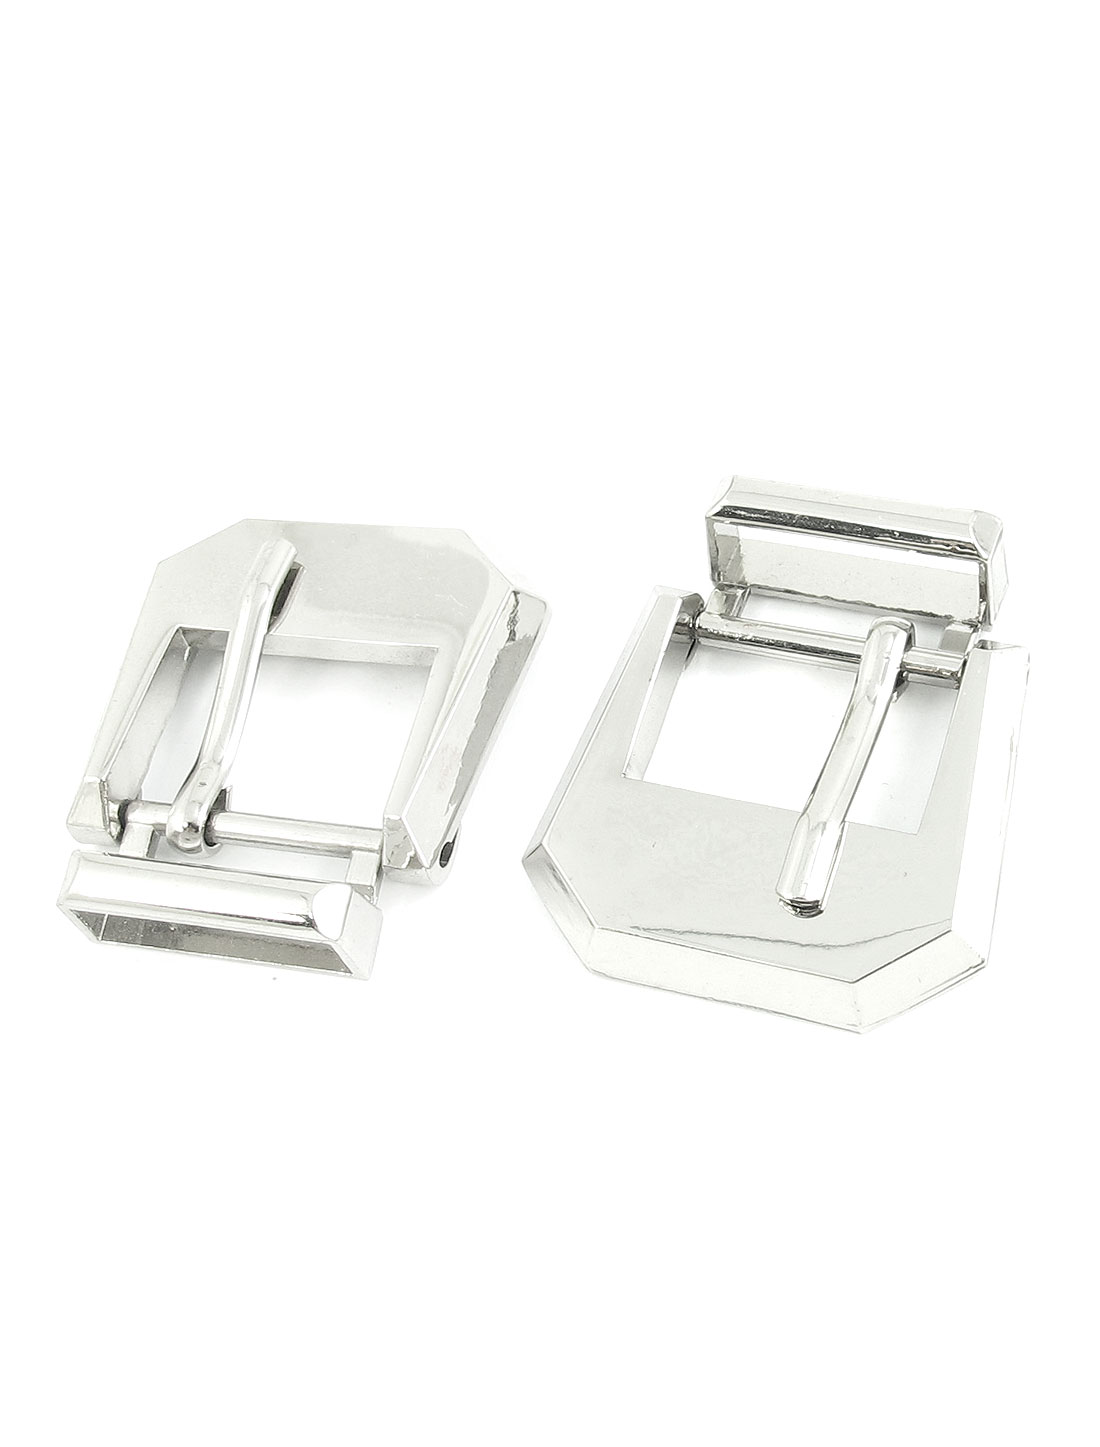 2 Pcs Silver Tone Rectangle Shape Metal Belt Single Pin Buckle